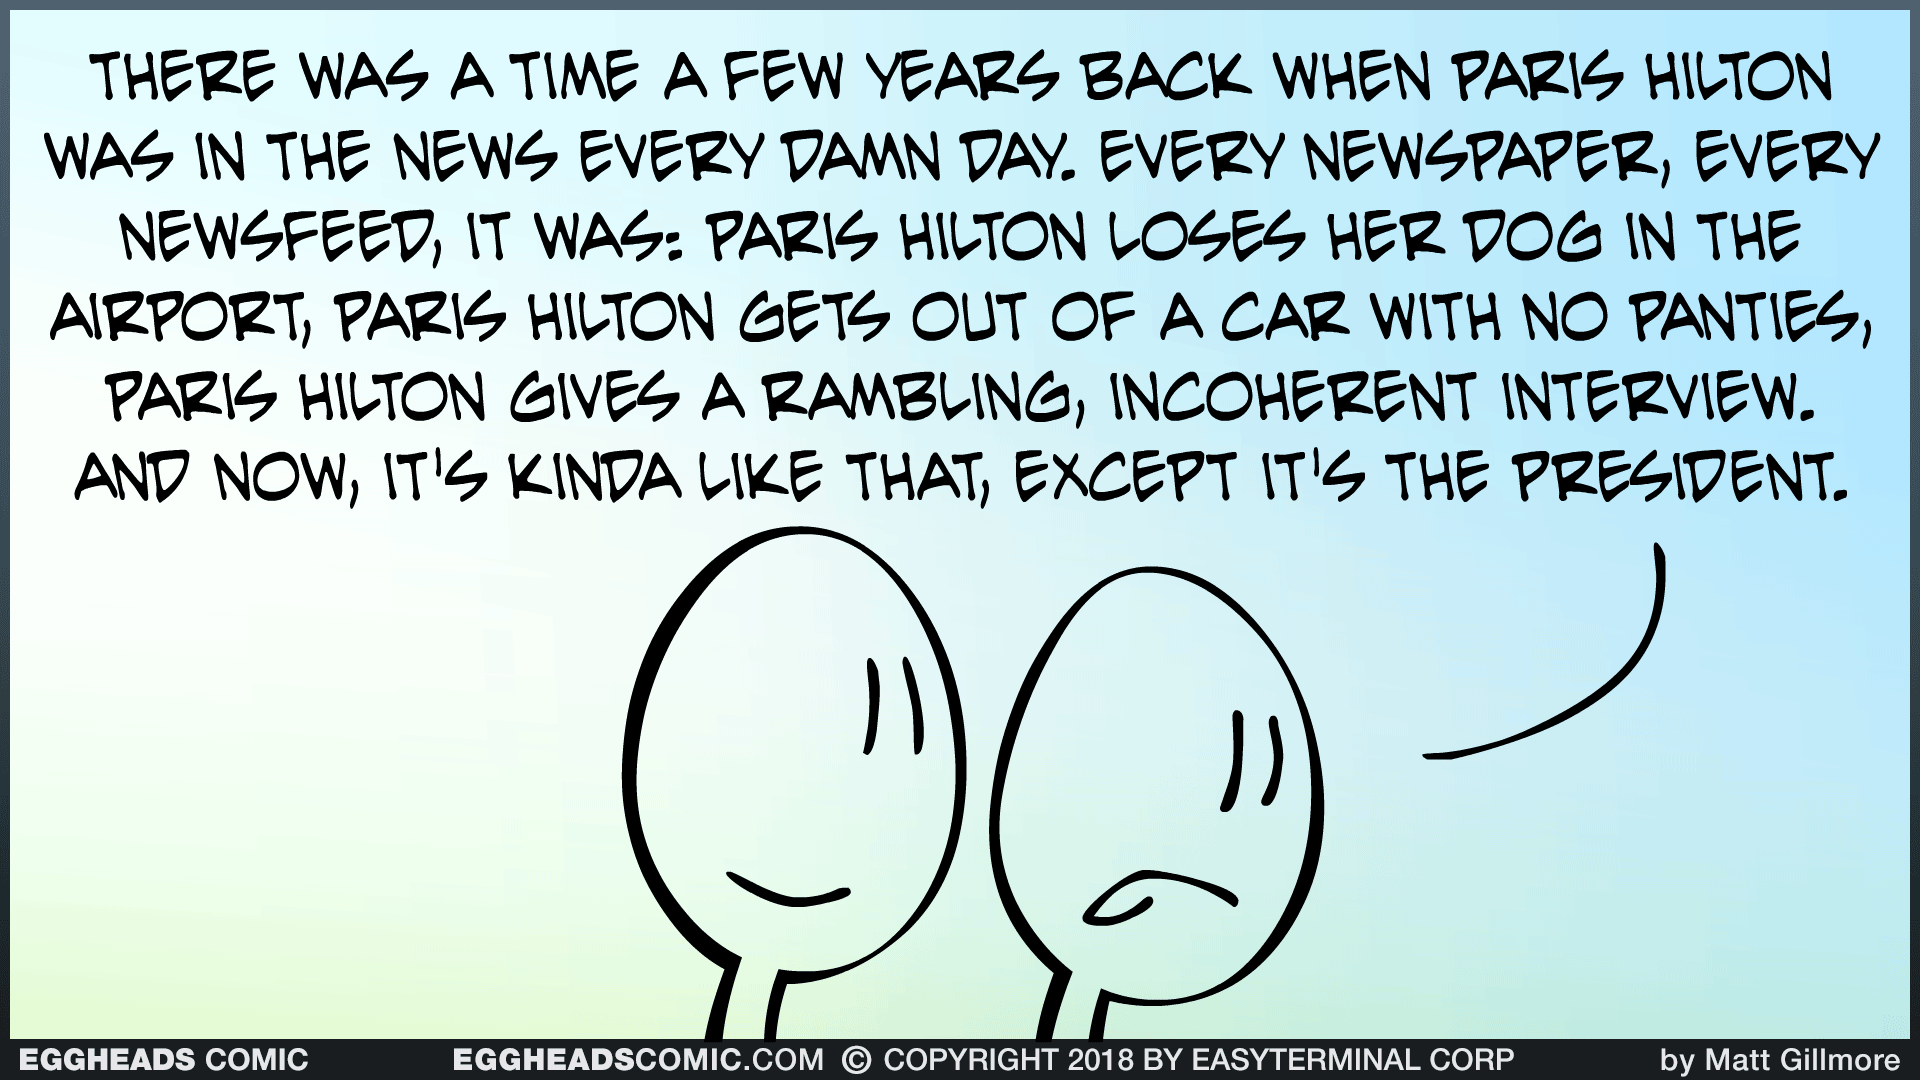 Webcomic Eggheads Comic Strip 109 There Was A Time